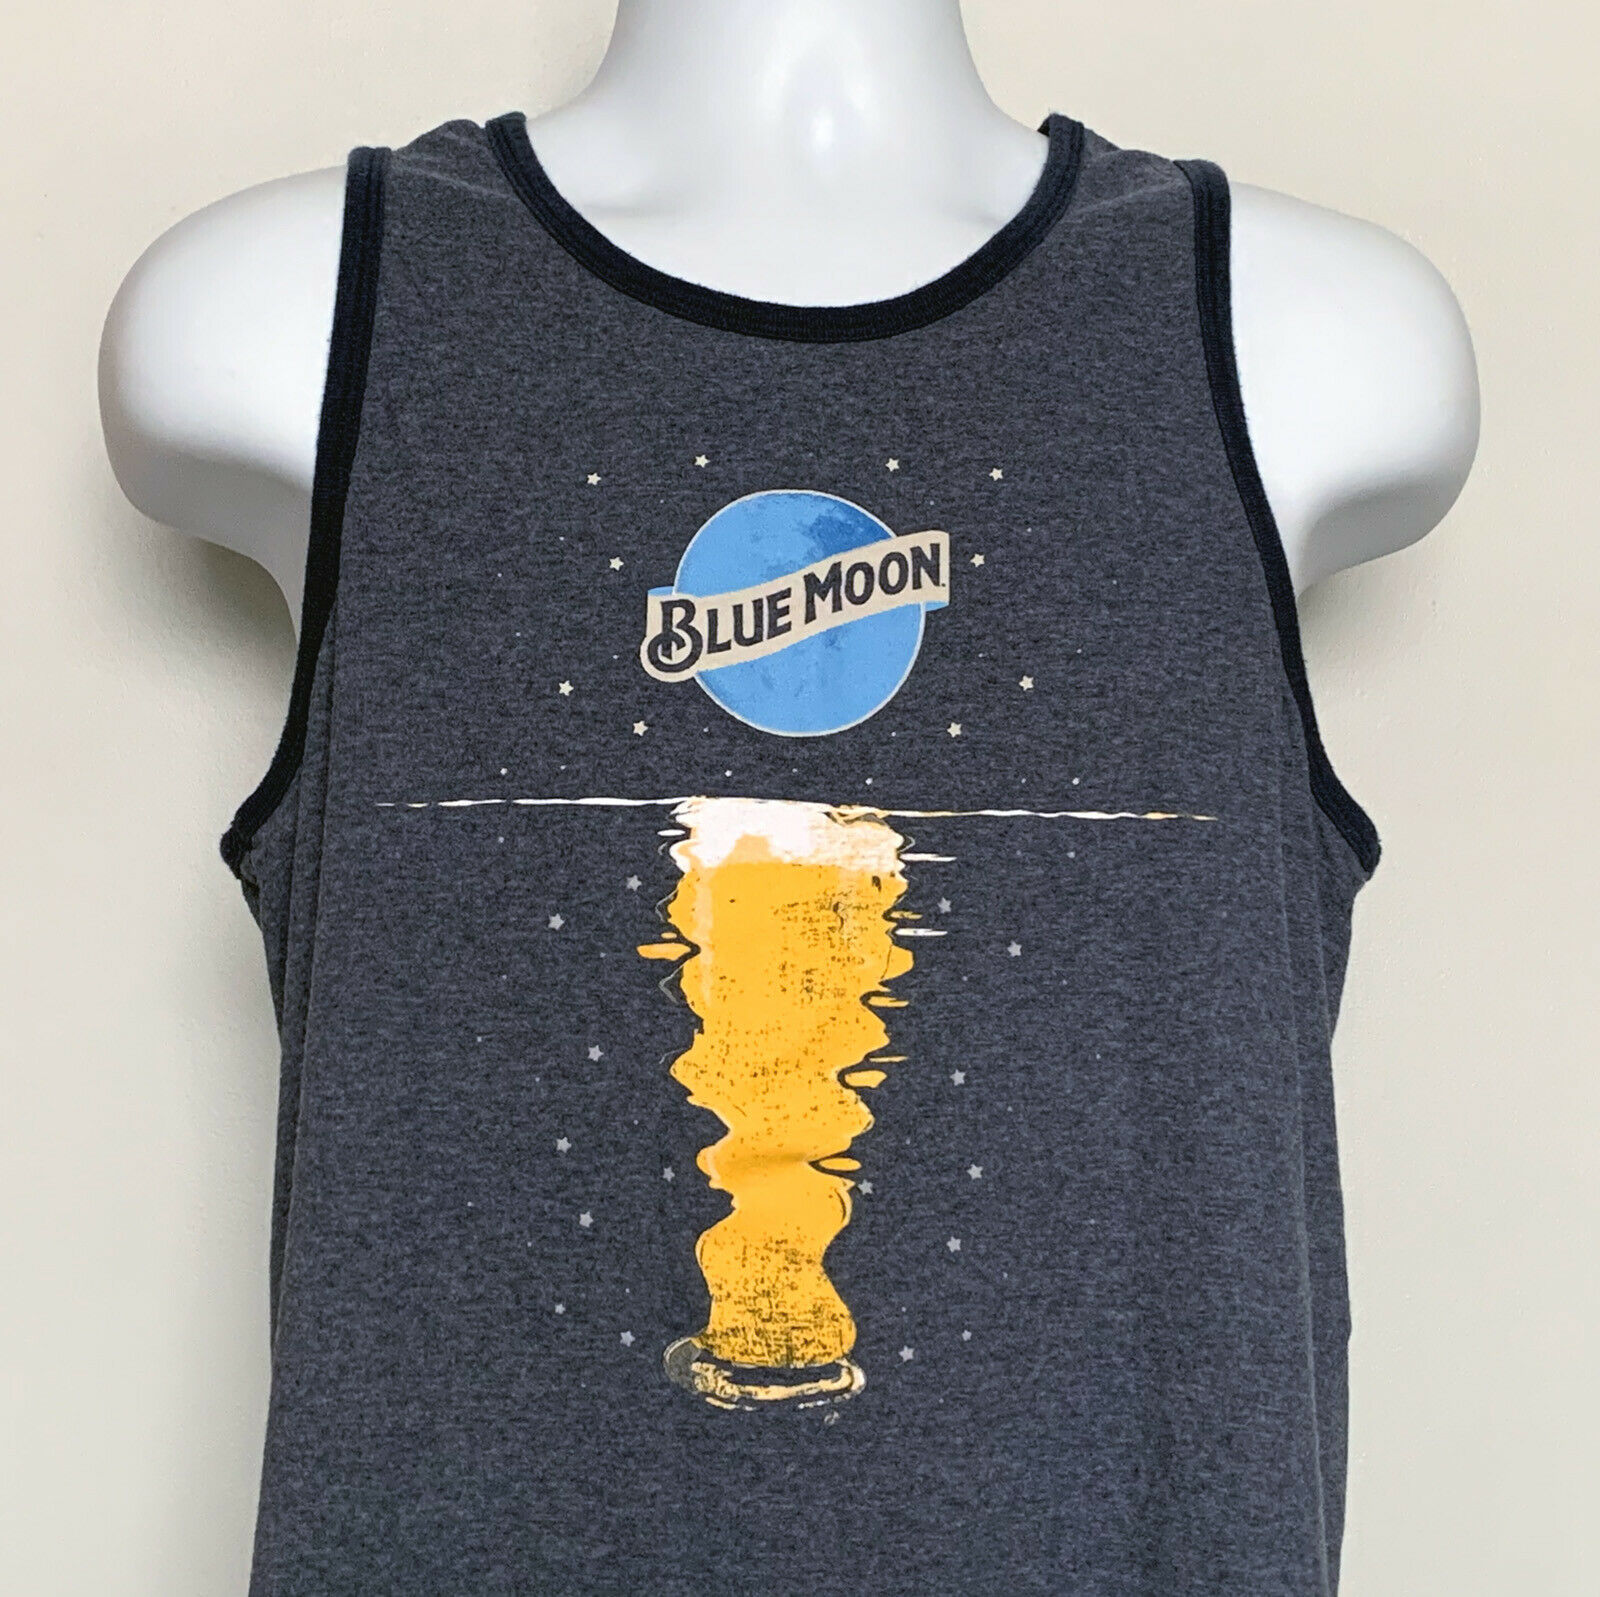 Primary image for Blue Moon Brewing Co Beer Tank Top T Shirt Mens Medium Moon Reflection 50/50